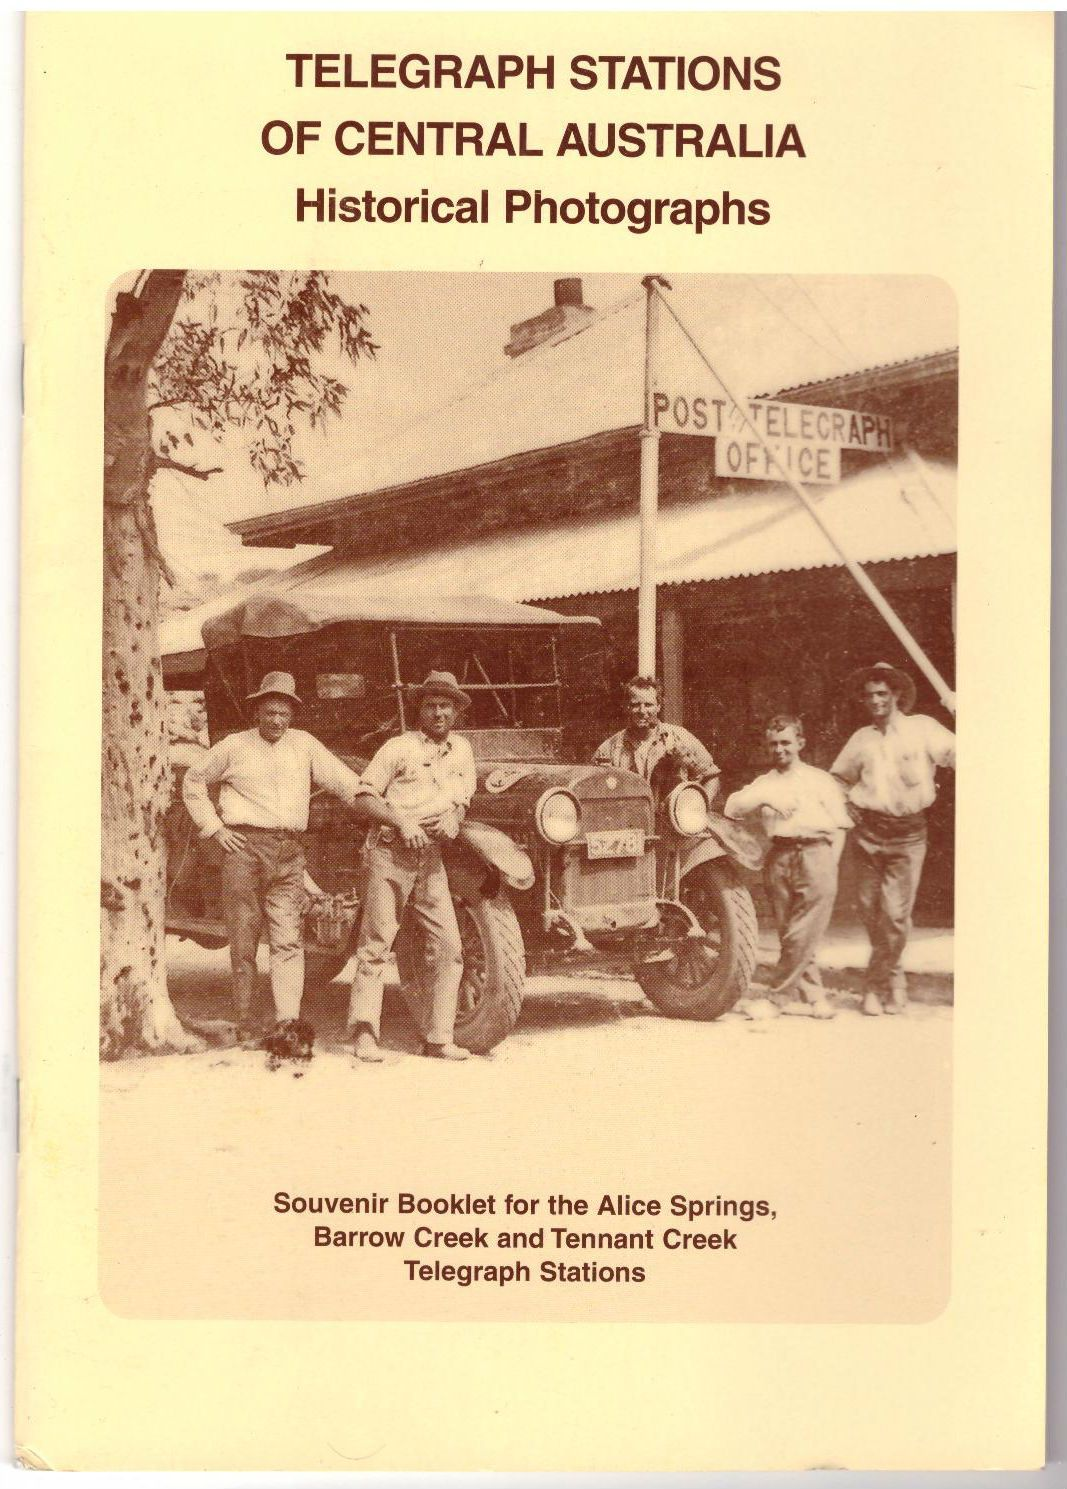 Telegraph stations of Central Australia: historical photographs.